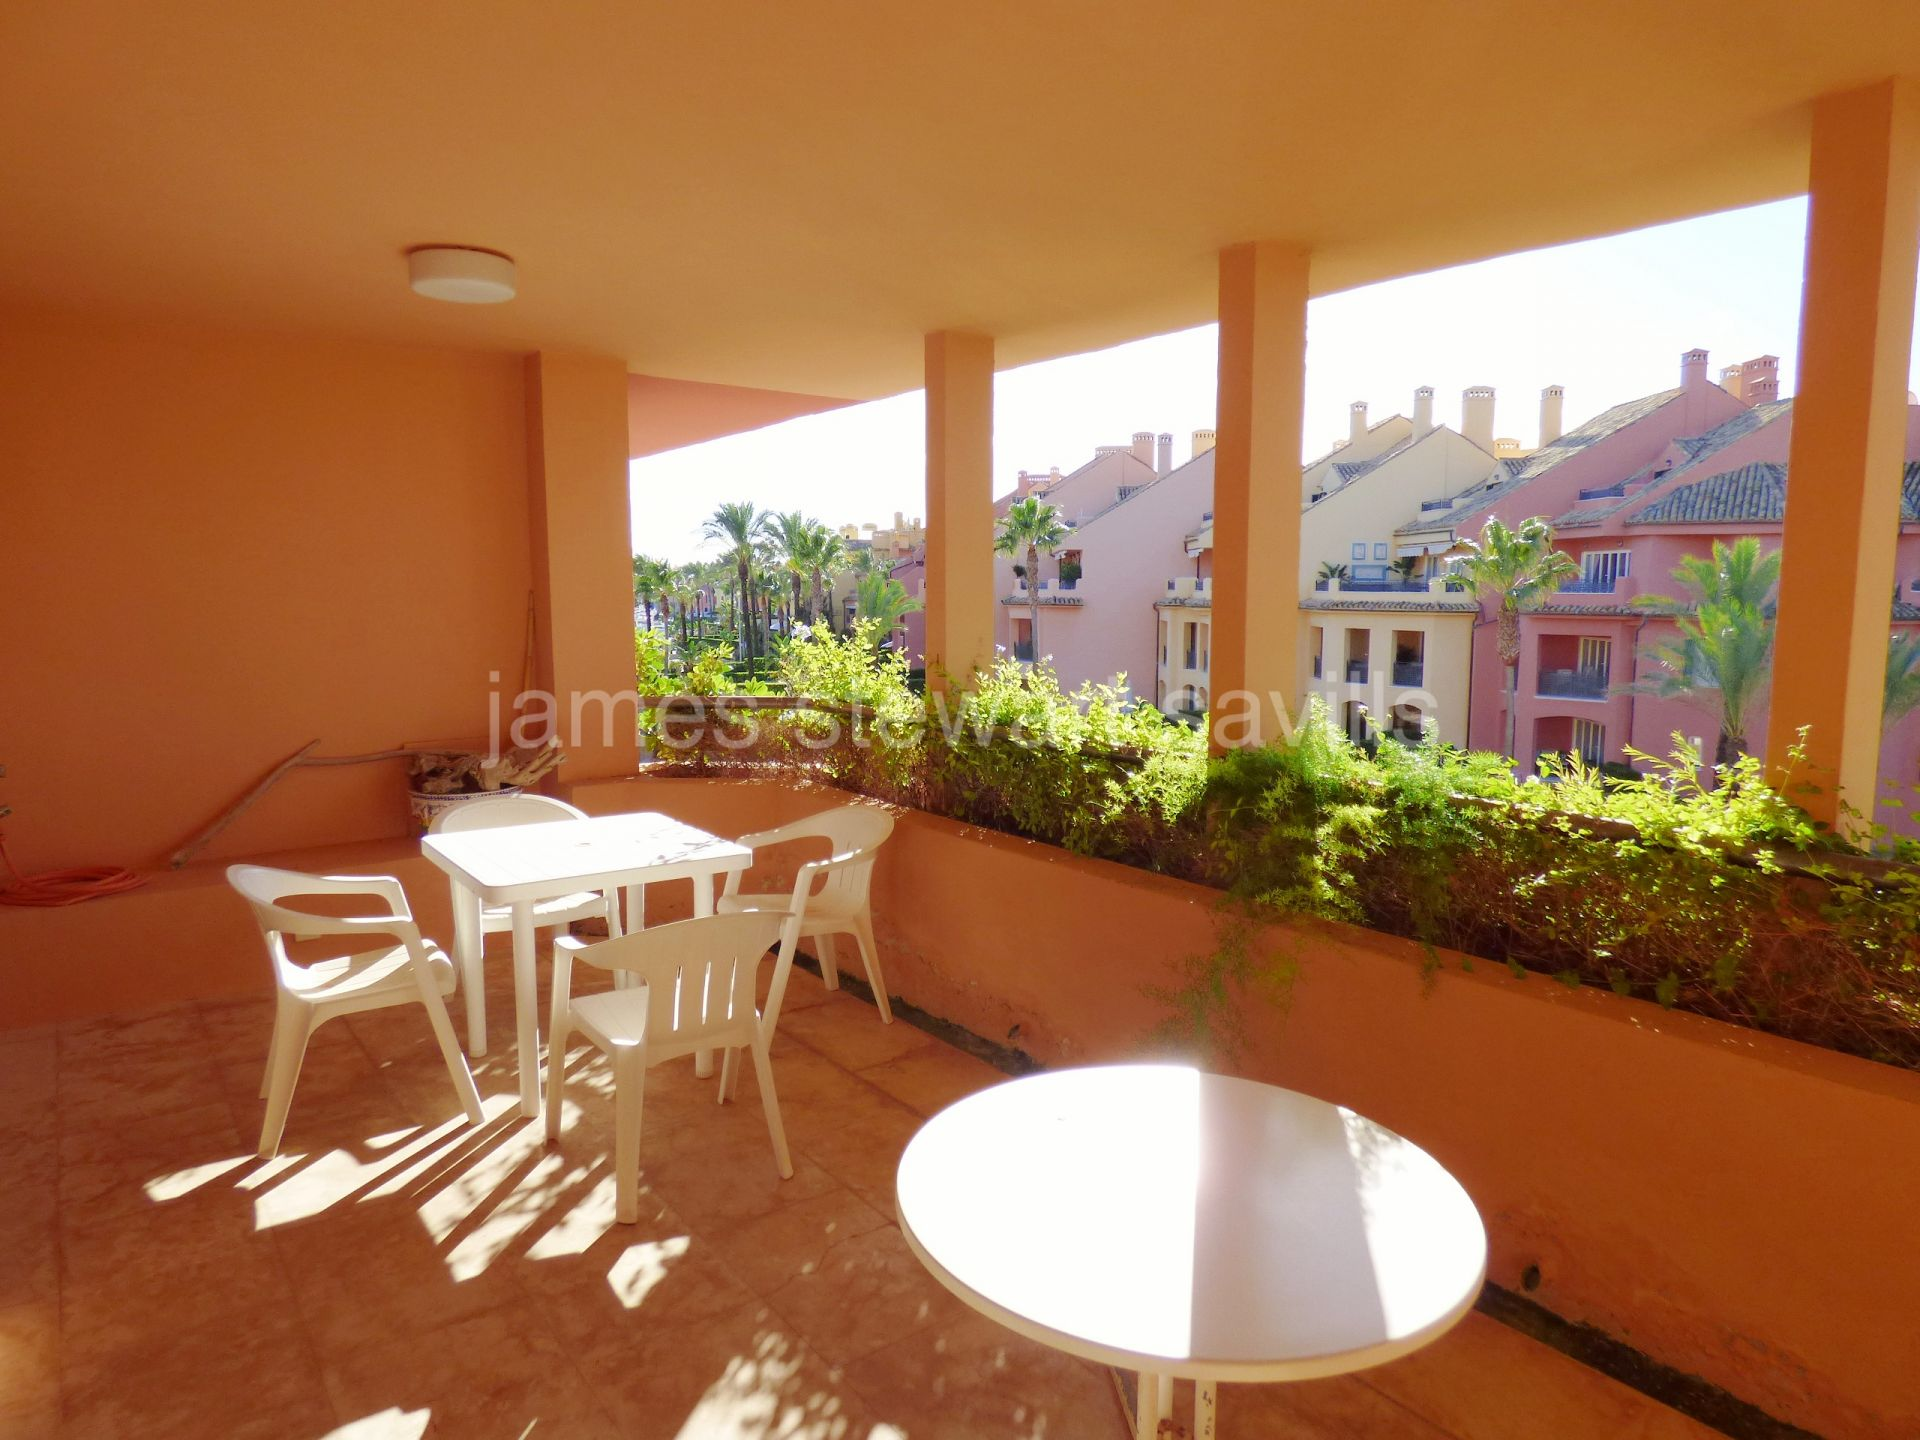 Apartment for sale in Sotogrande Puerto Deportivo, Sotogrande